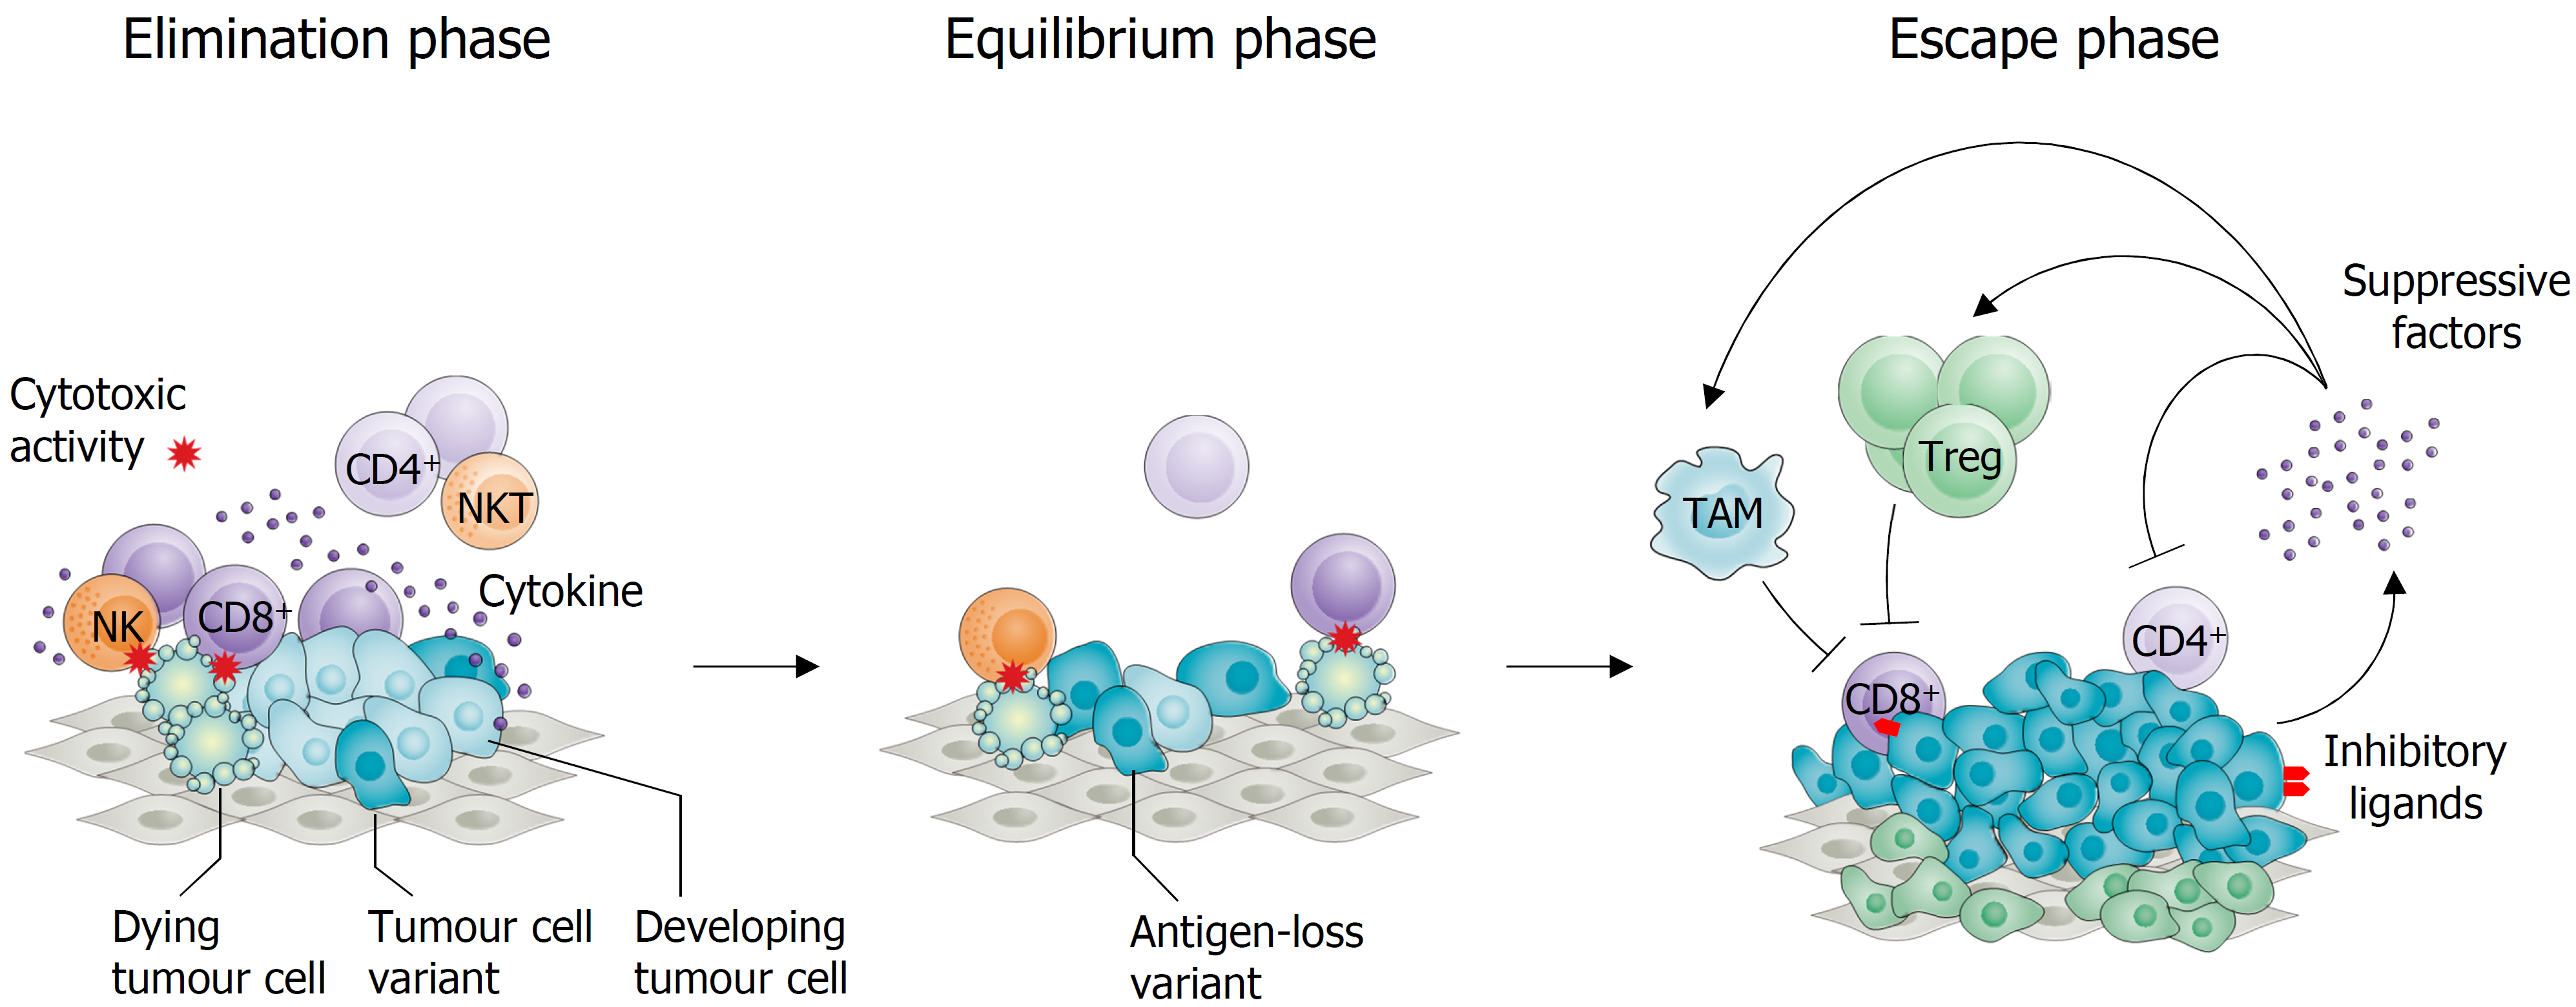 How is the function of the immune system suppressed during tumour development?